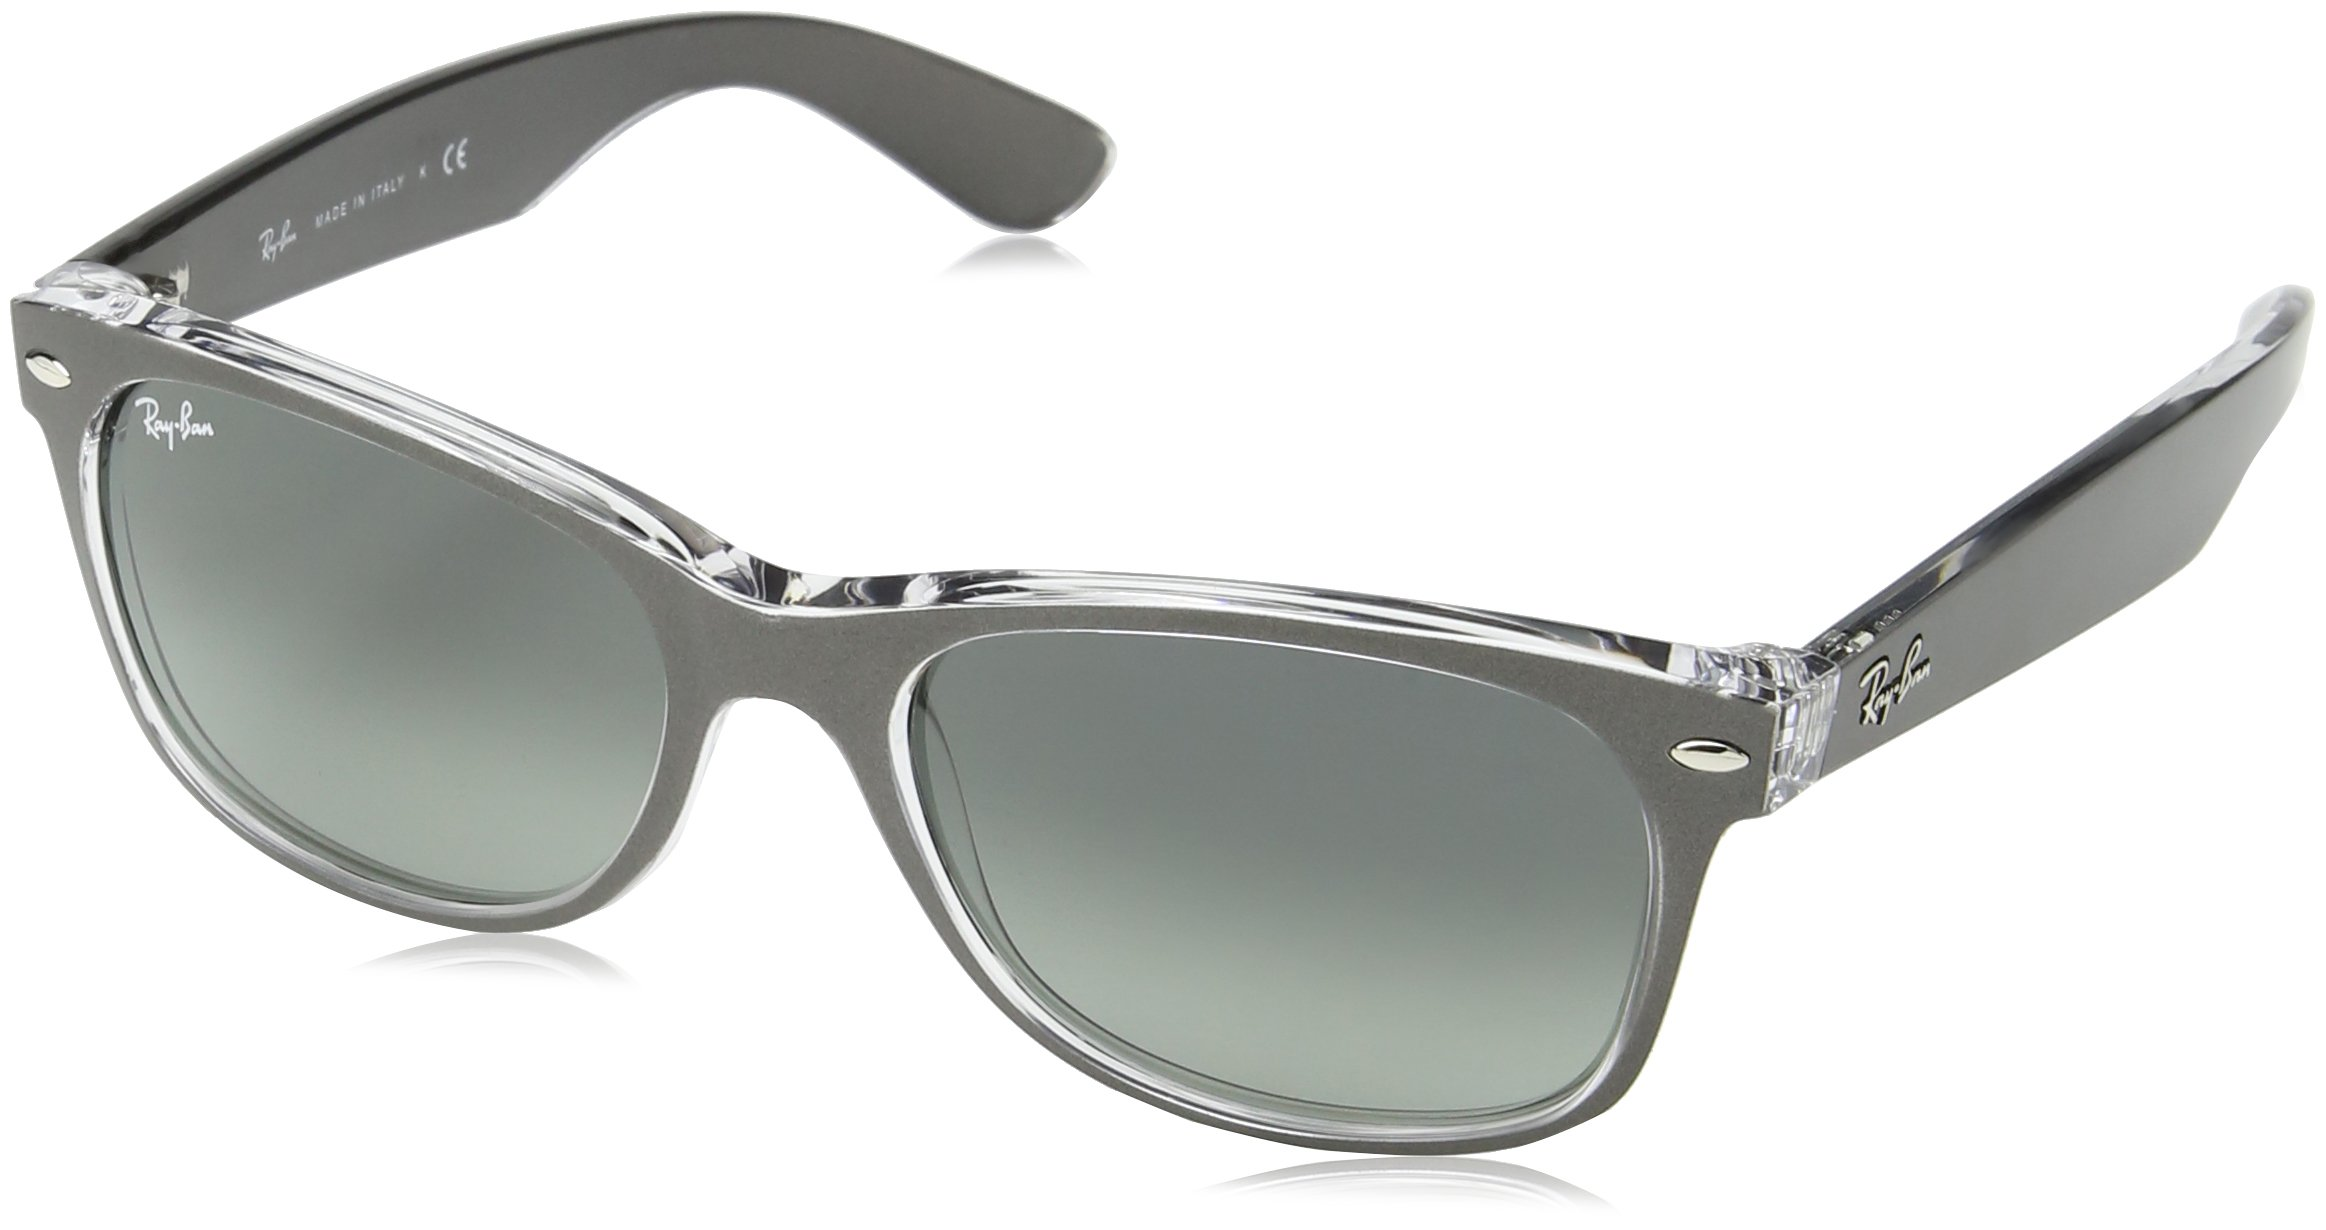 Ray-Ban RB2132 New Wayfarer Non-Polarized Sunglasses, Top Brushed Gunmetal, Dark Grey Gradient,  55 mm